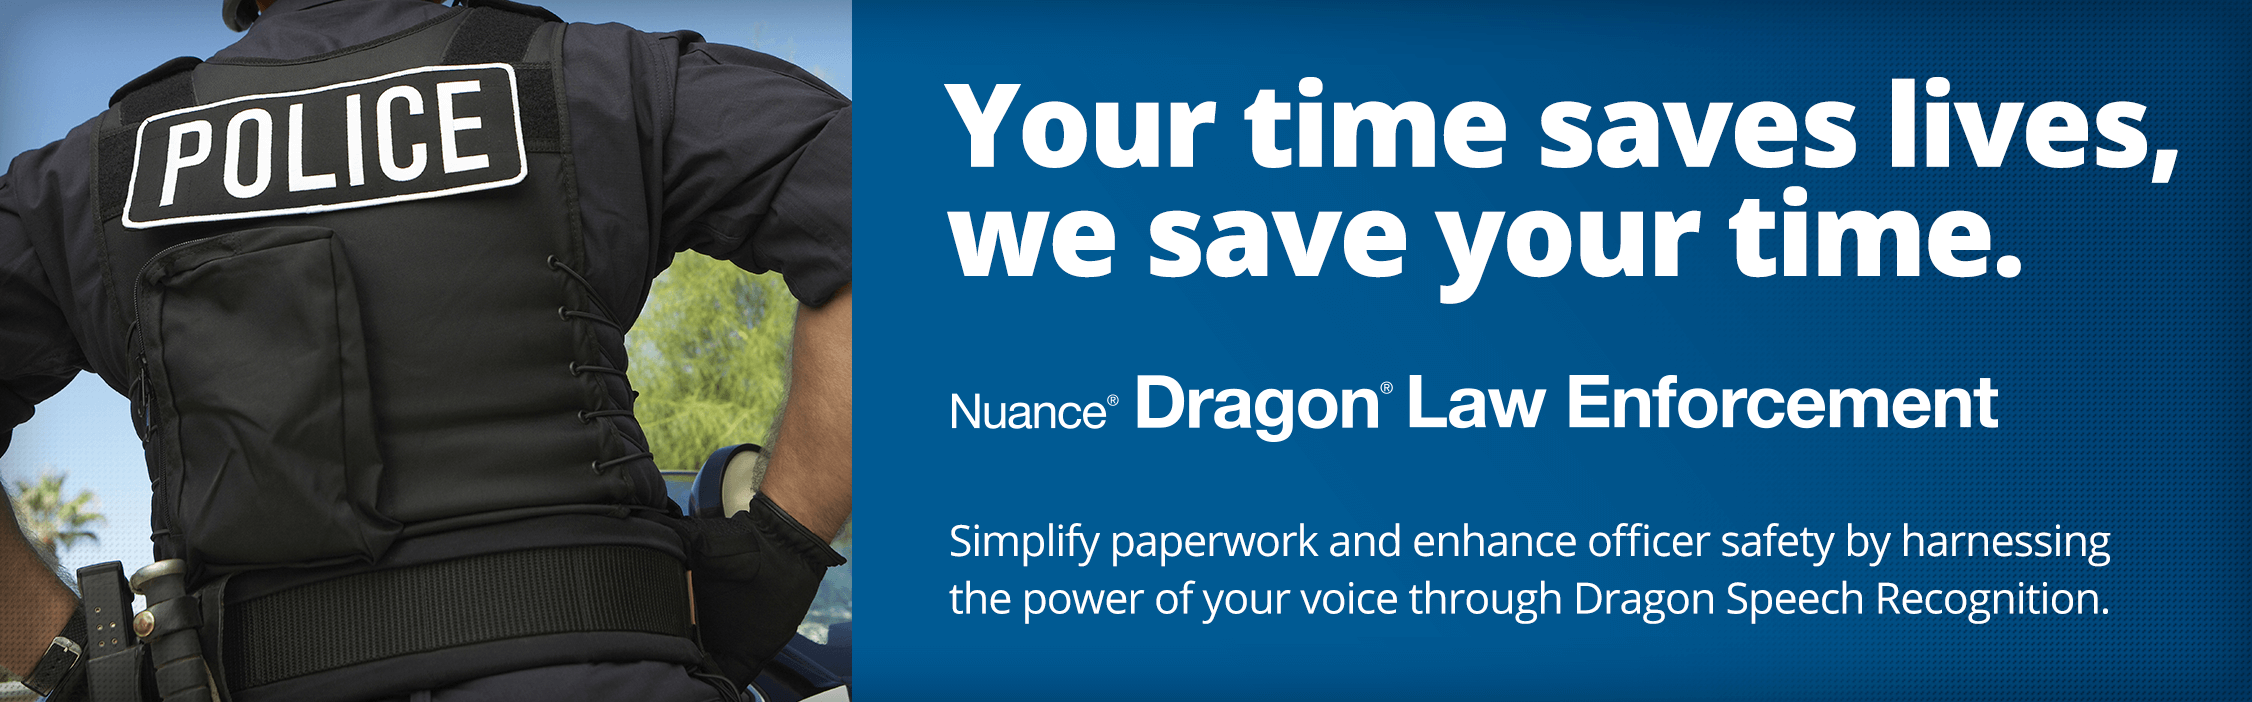 Your time saves lives, we save your time. Simplify paperwork and enhance officer safety by harnessing the power of your voice through Dragon Speech Recognition. Dragon Law Enforcement